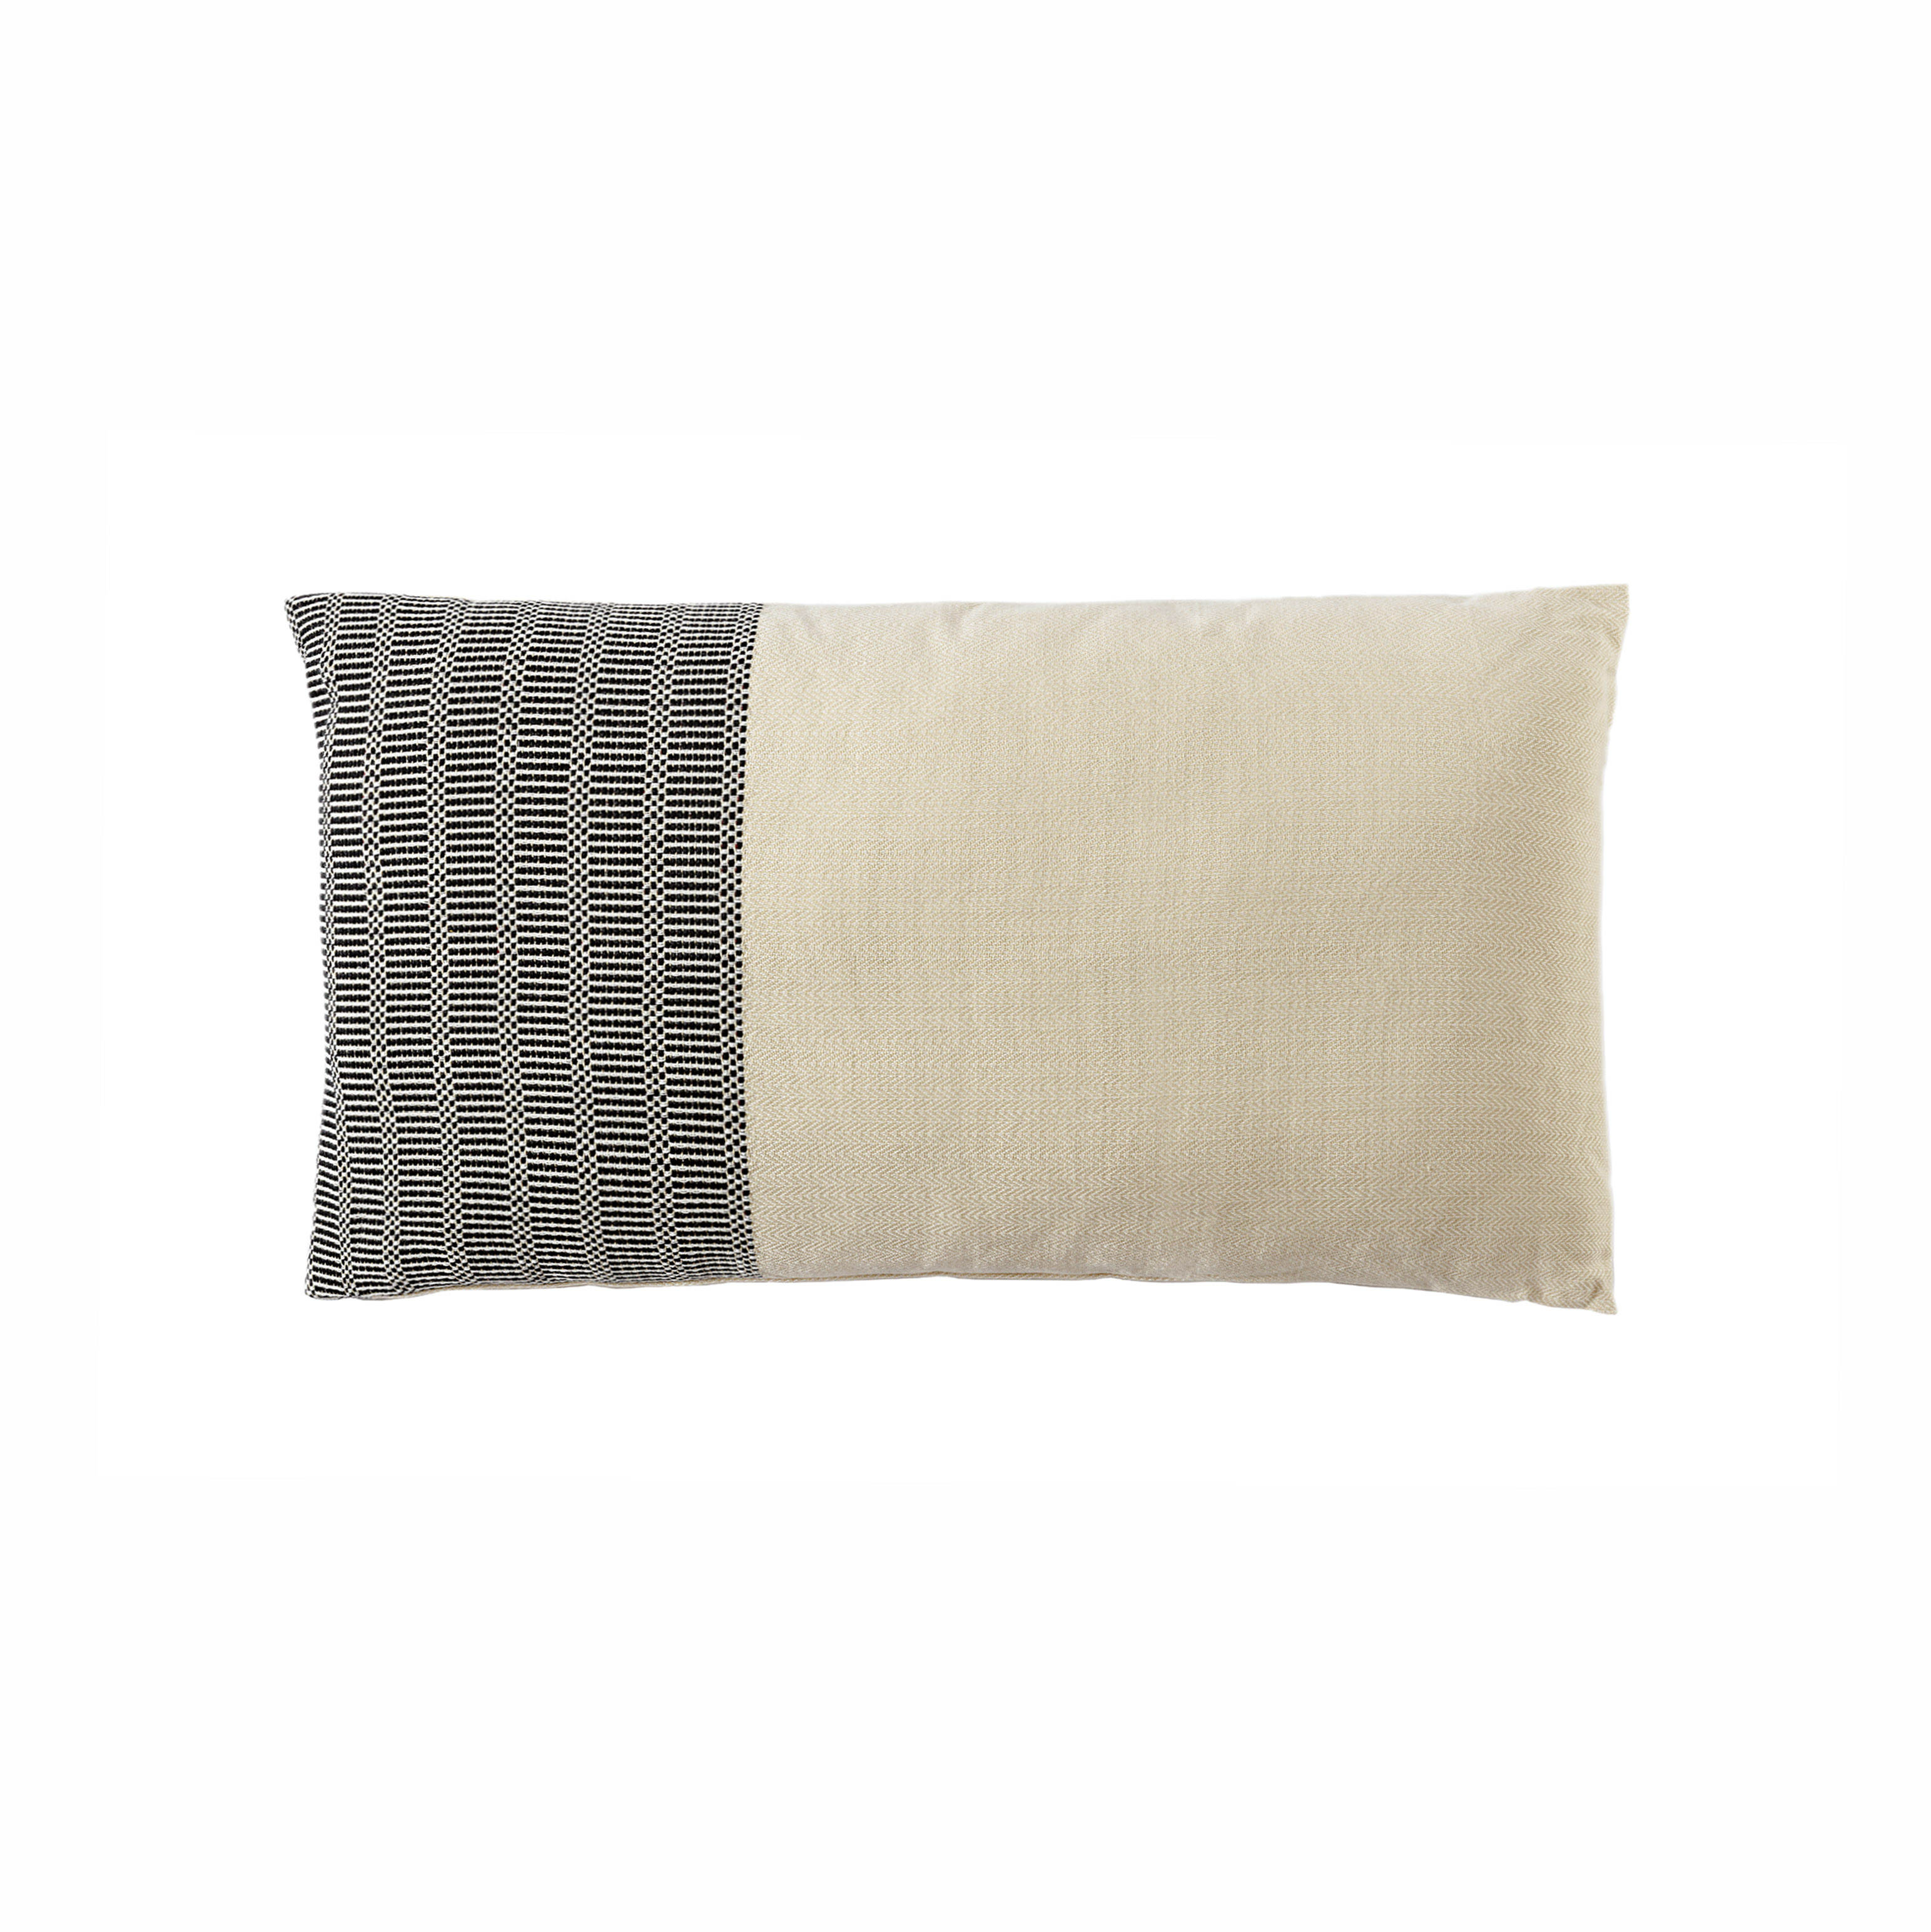 BISACCIA Cushion - <p>Made with Pibiones and Aramu technique 90% wool, 10% cotton </p>  | Matter of Stuff